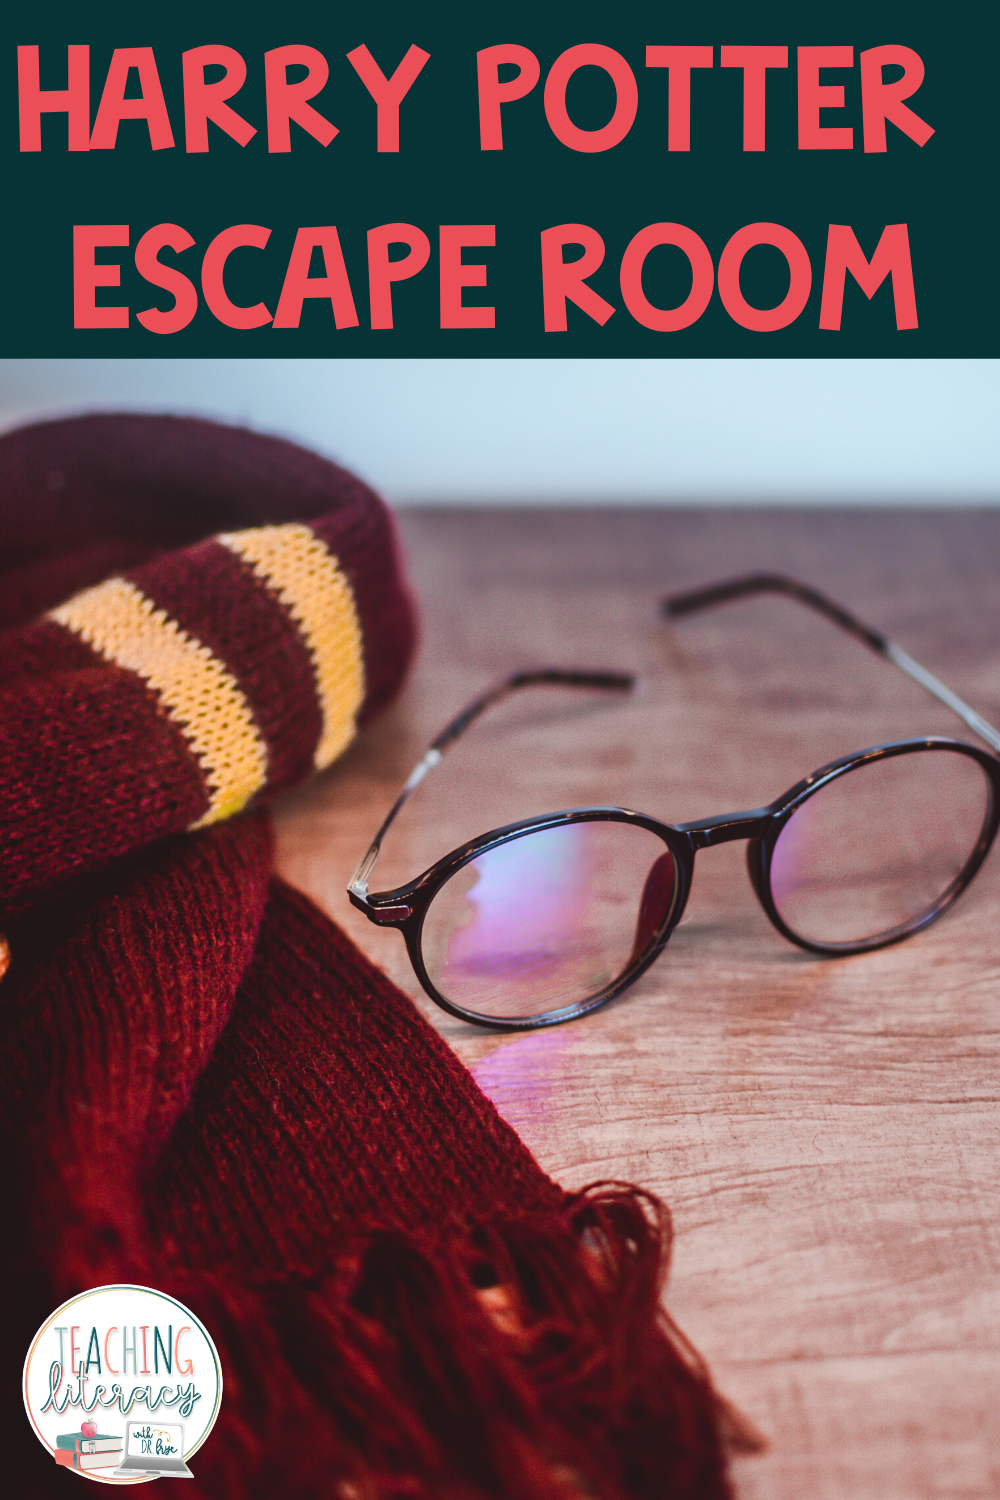 Harry Potter and the Sorcerer's Stone ESCAPE ROOM in 2020